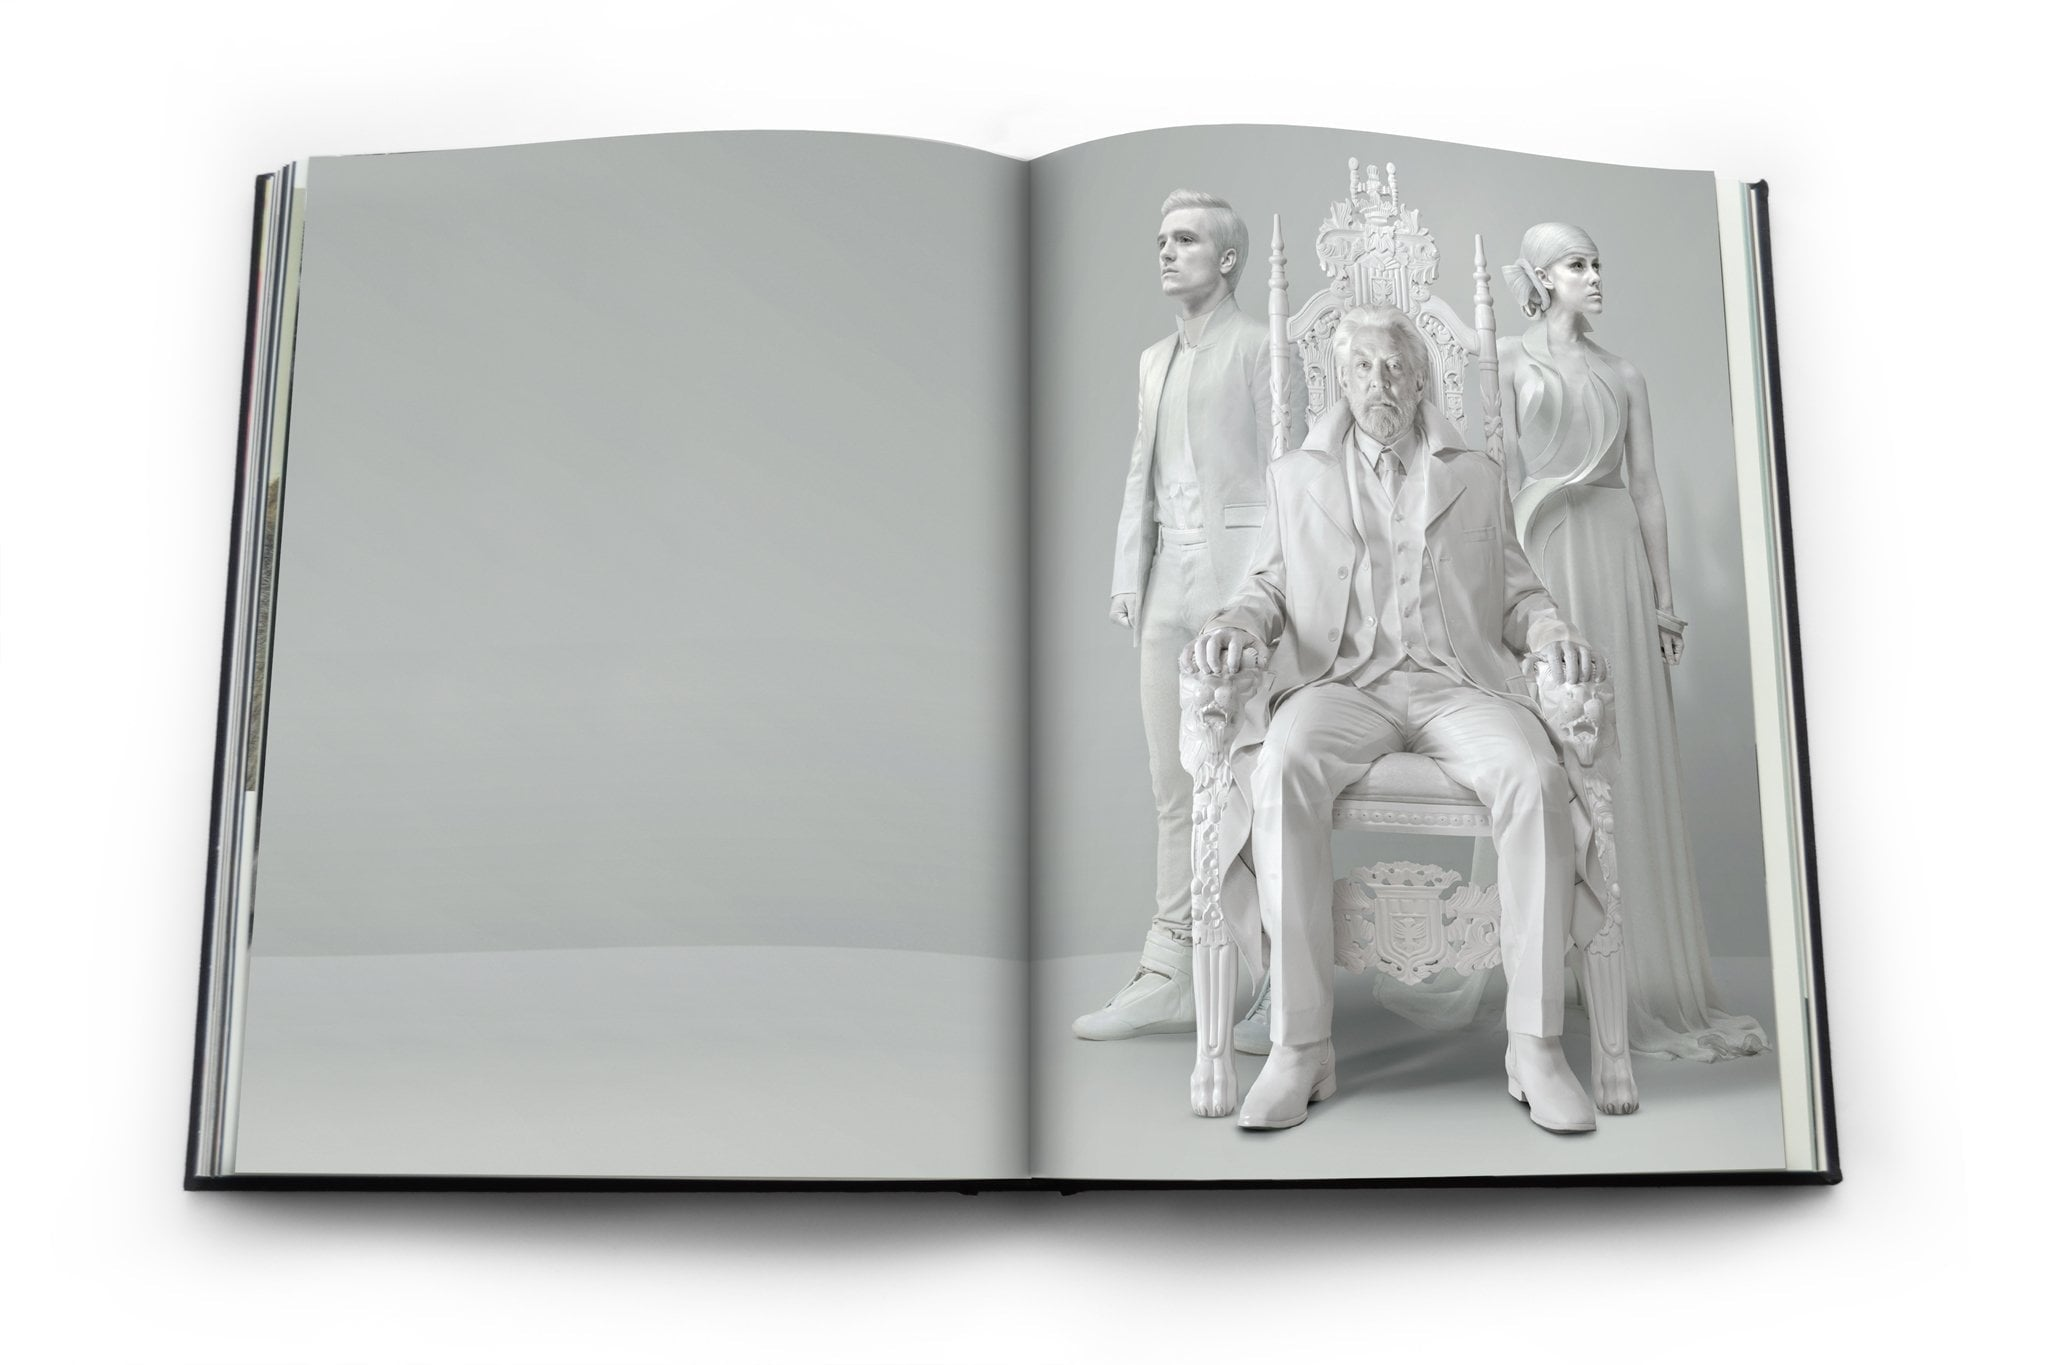 Tim Palen: Photographs from The Hunger Games - Assouline